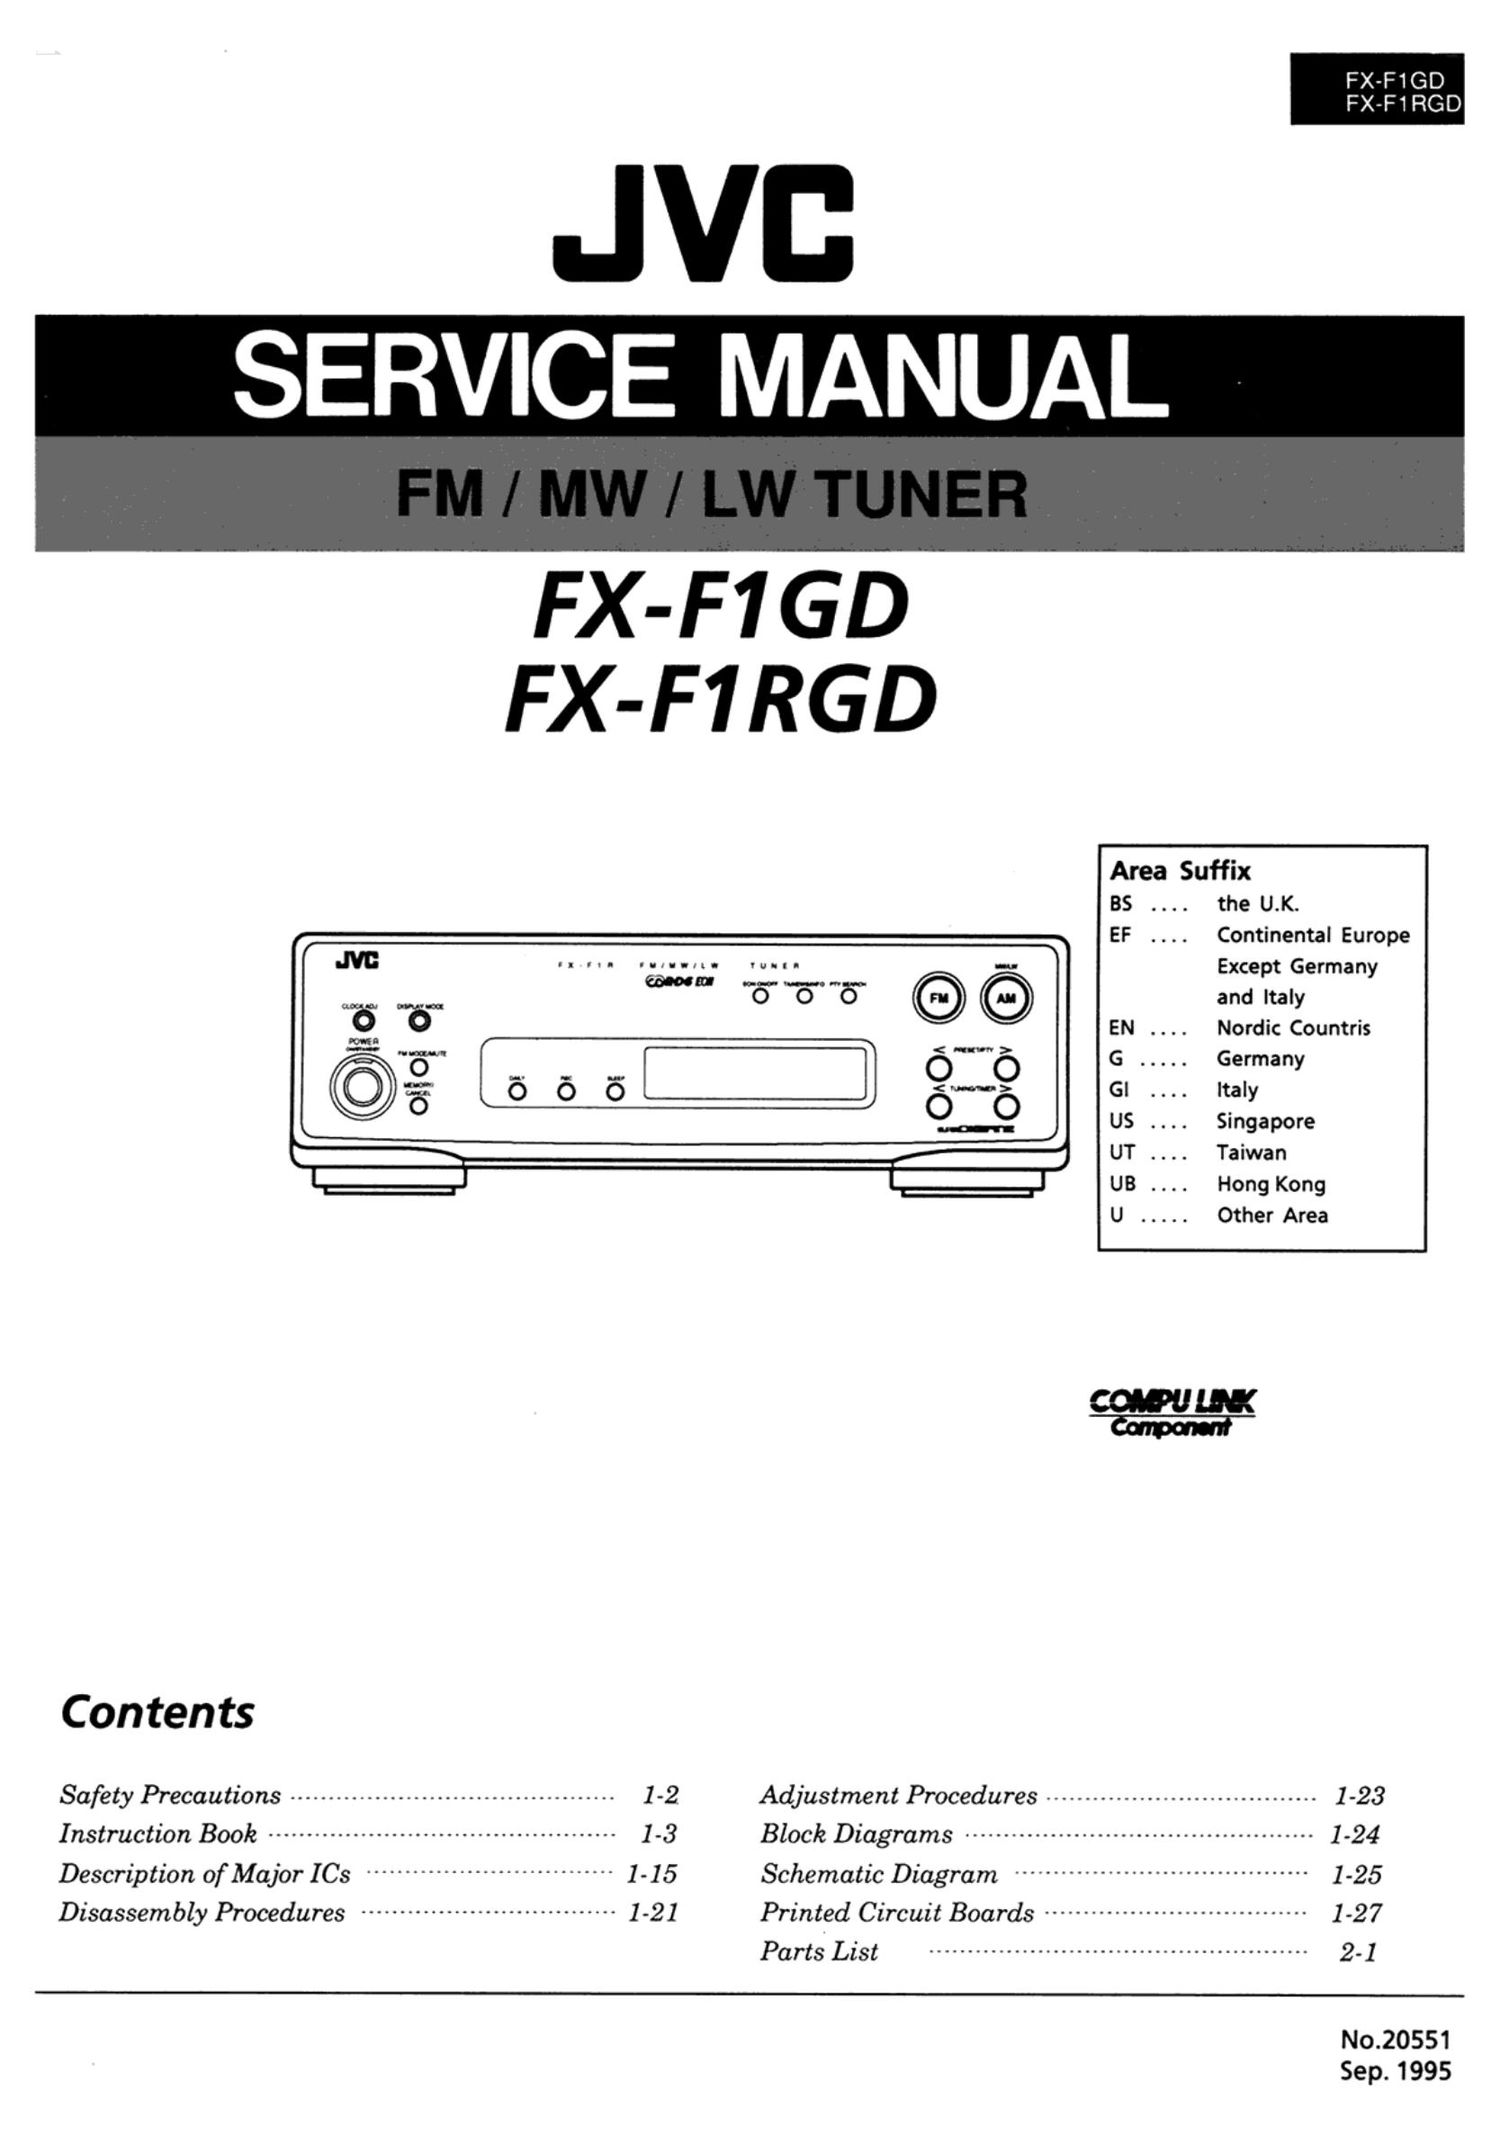 Free Download Jvc Fxf 1 Gd Service Manual